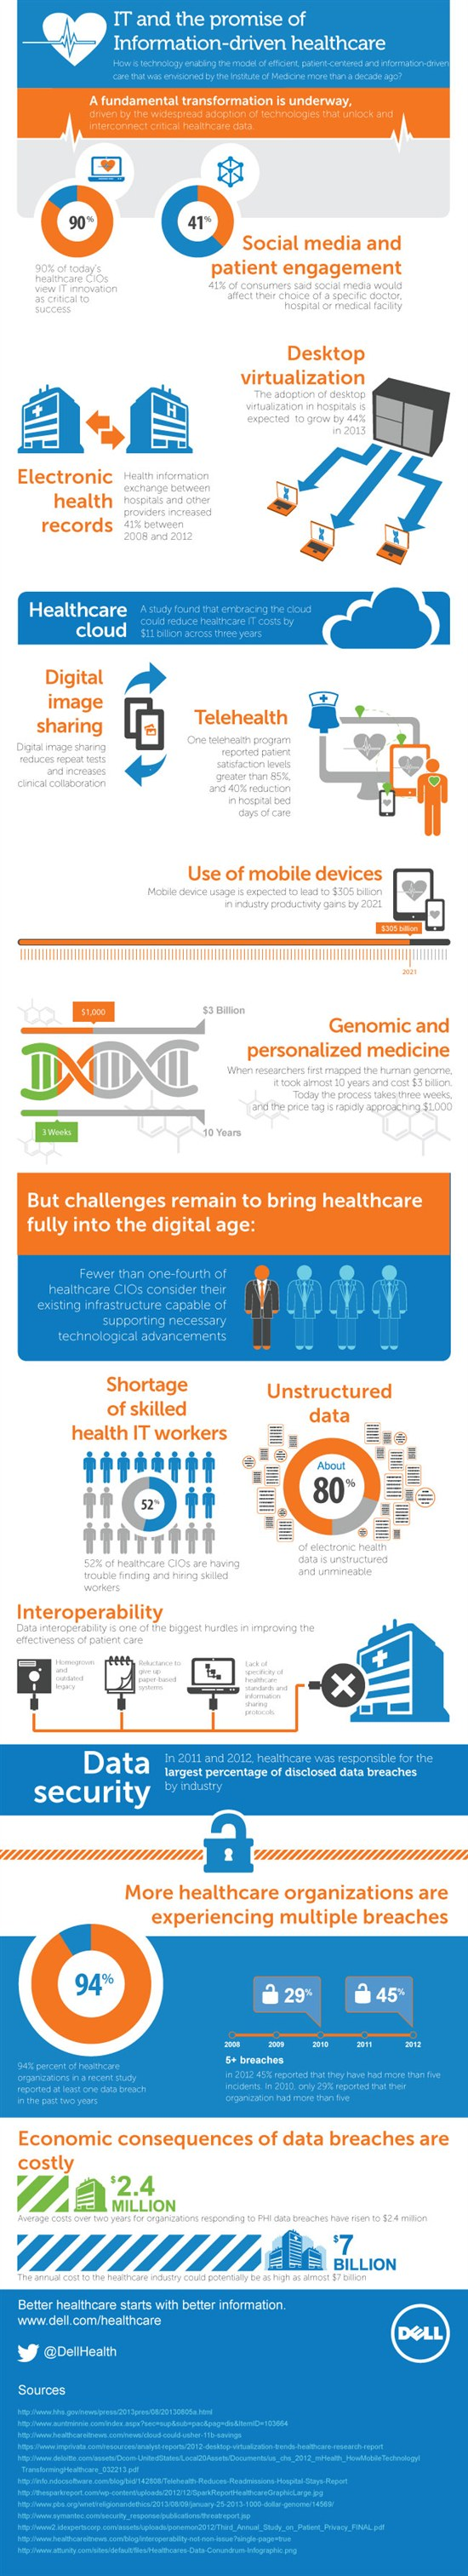 Innovative technology is changing the field of healthcare from increased patient engagement